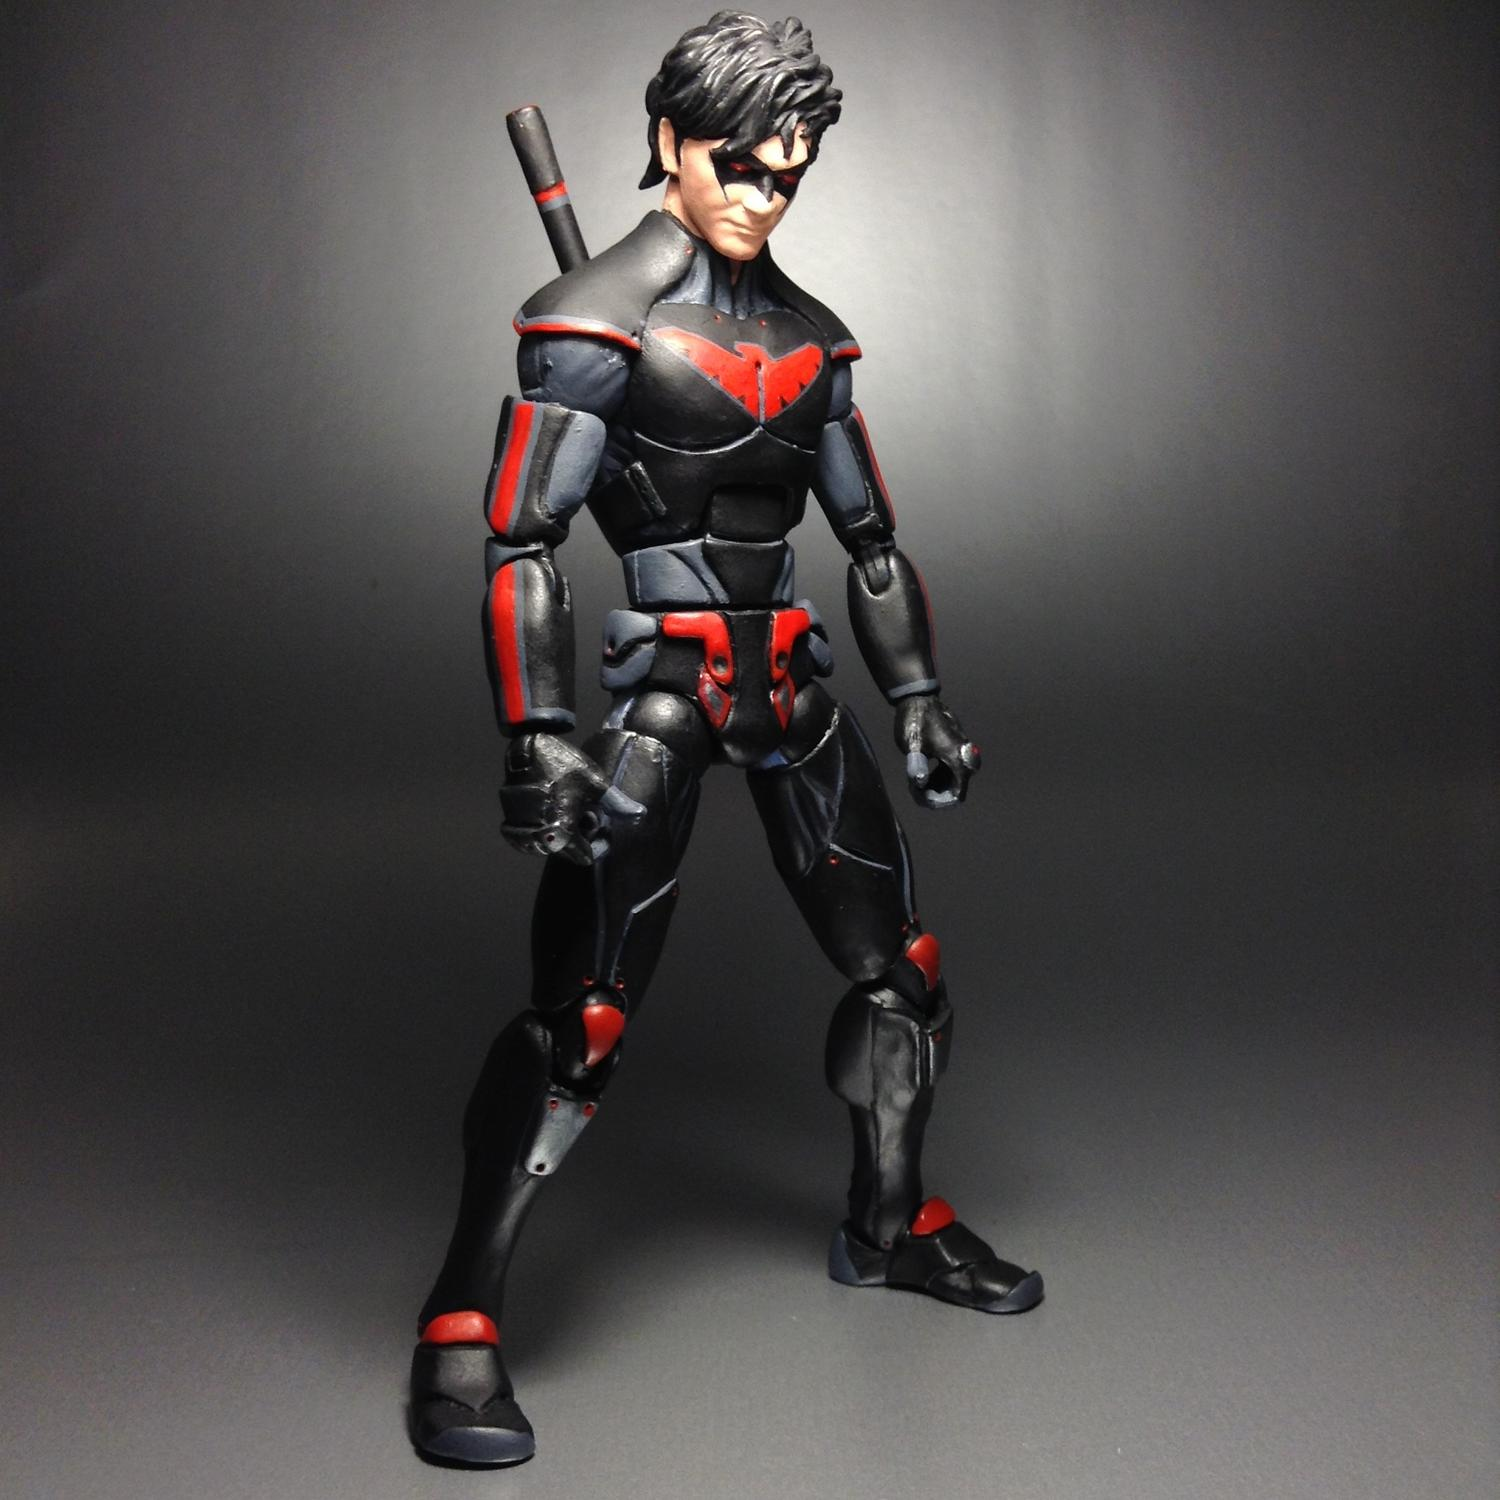 new 52 nightwing concept style design toy discussion at